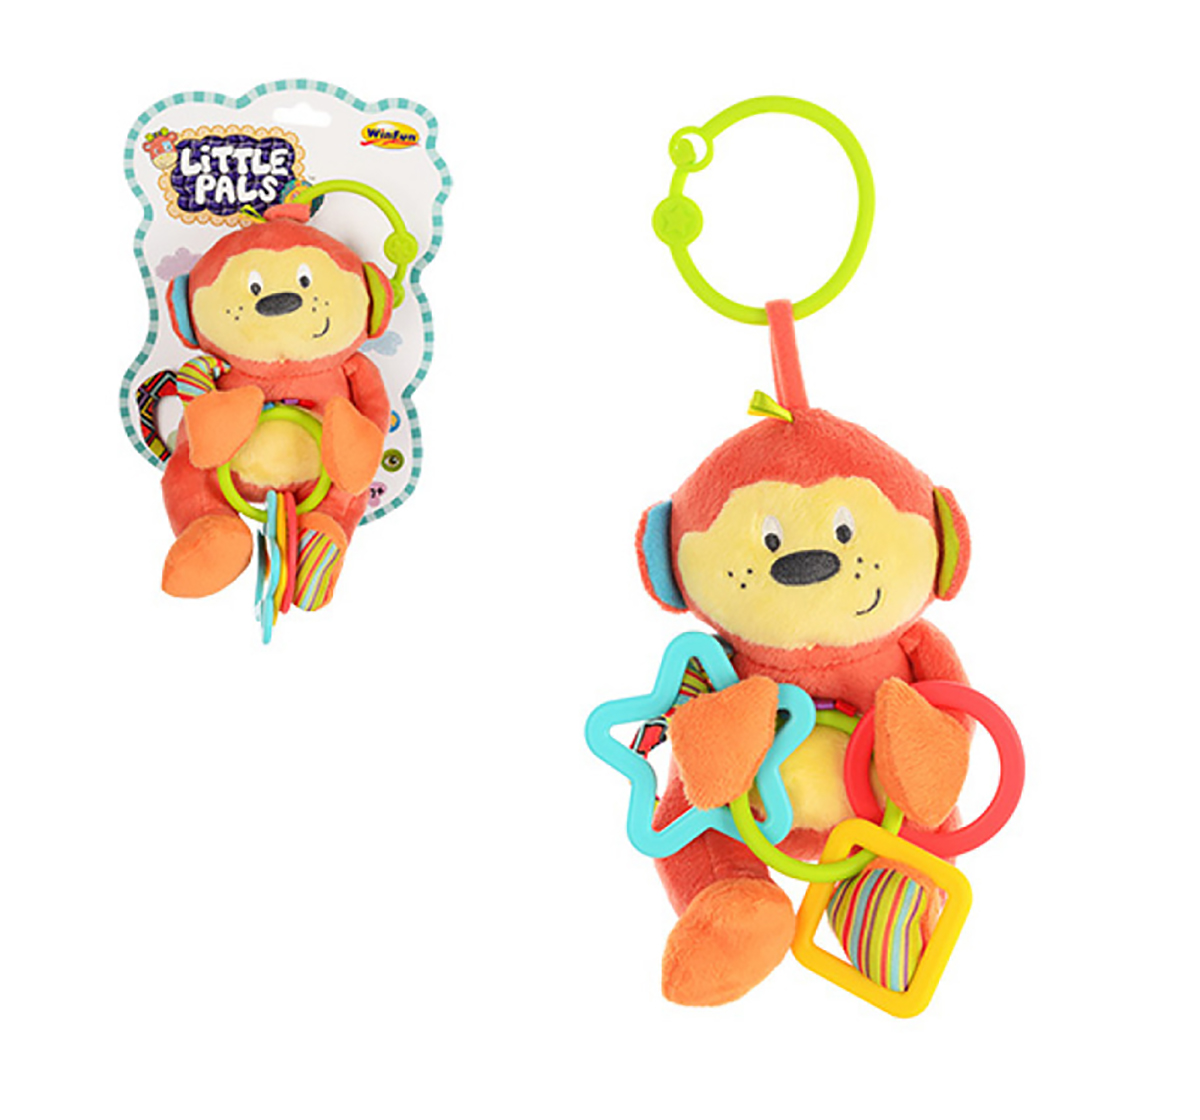 WinFun | Winfun Cheeky Chimp Rattle With Wings New Born for Kids age 0M+